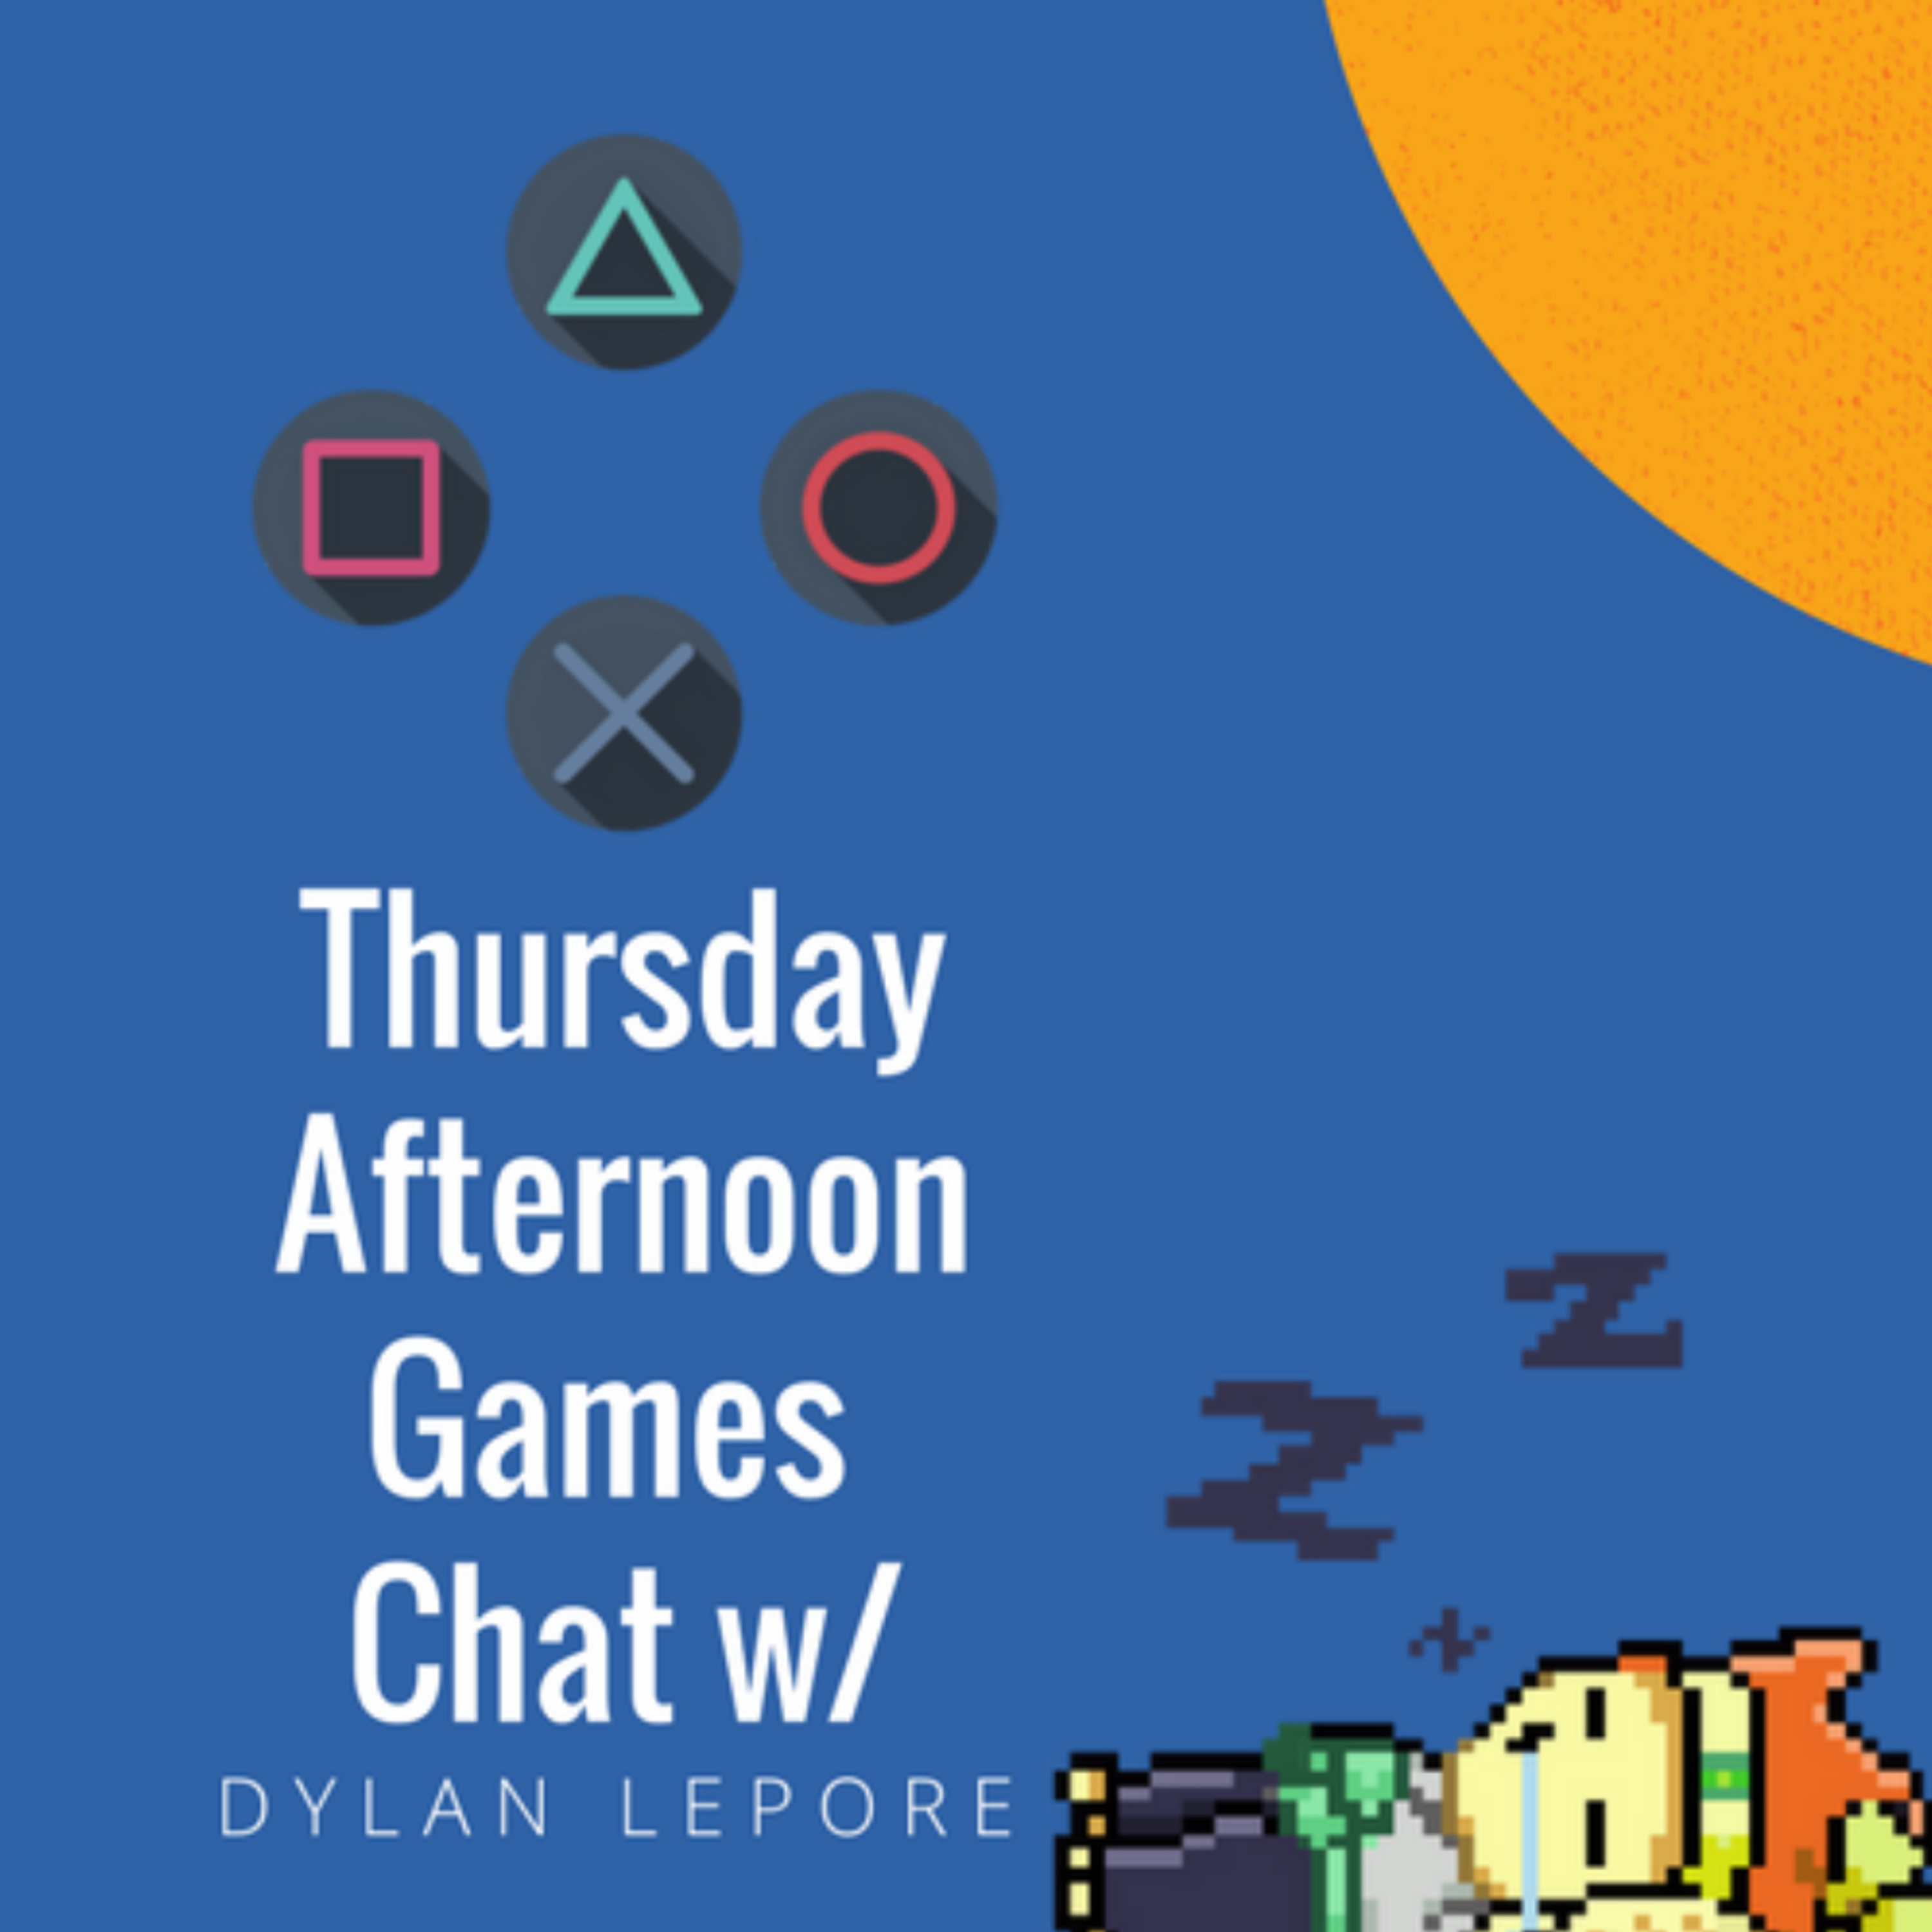 PREY (2017) | the Thursday Afternoon Games Chat W/ Dylan Lepore Ep. 6